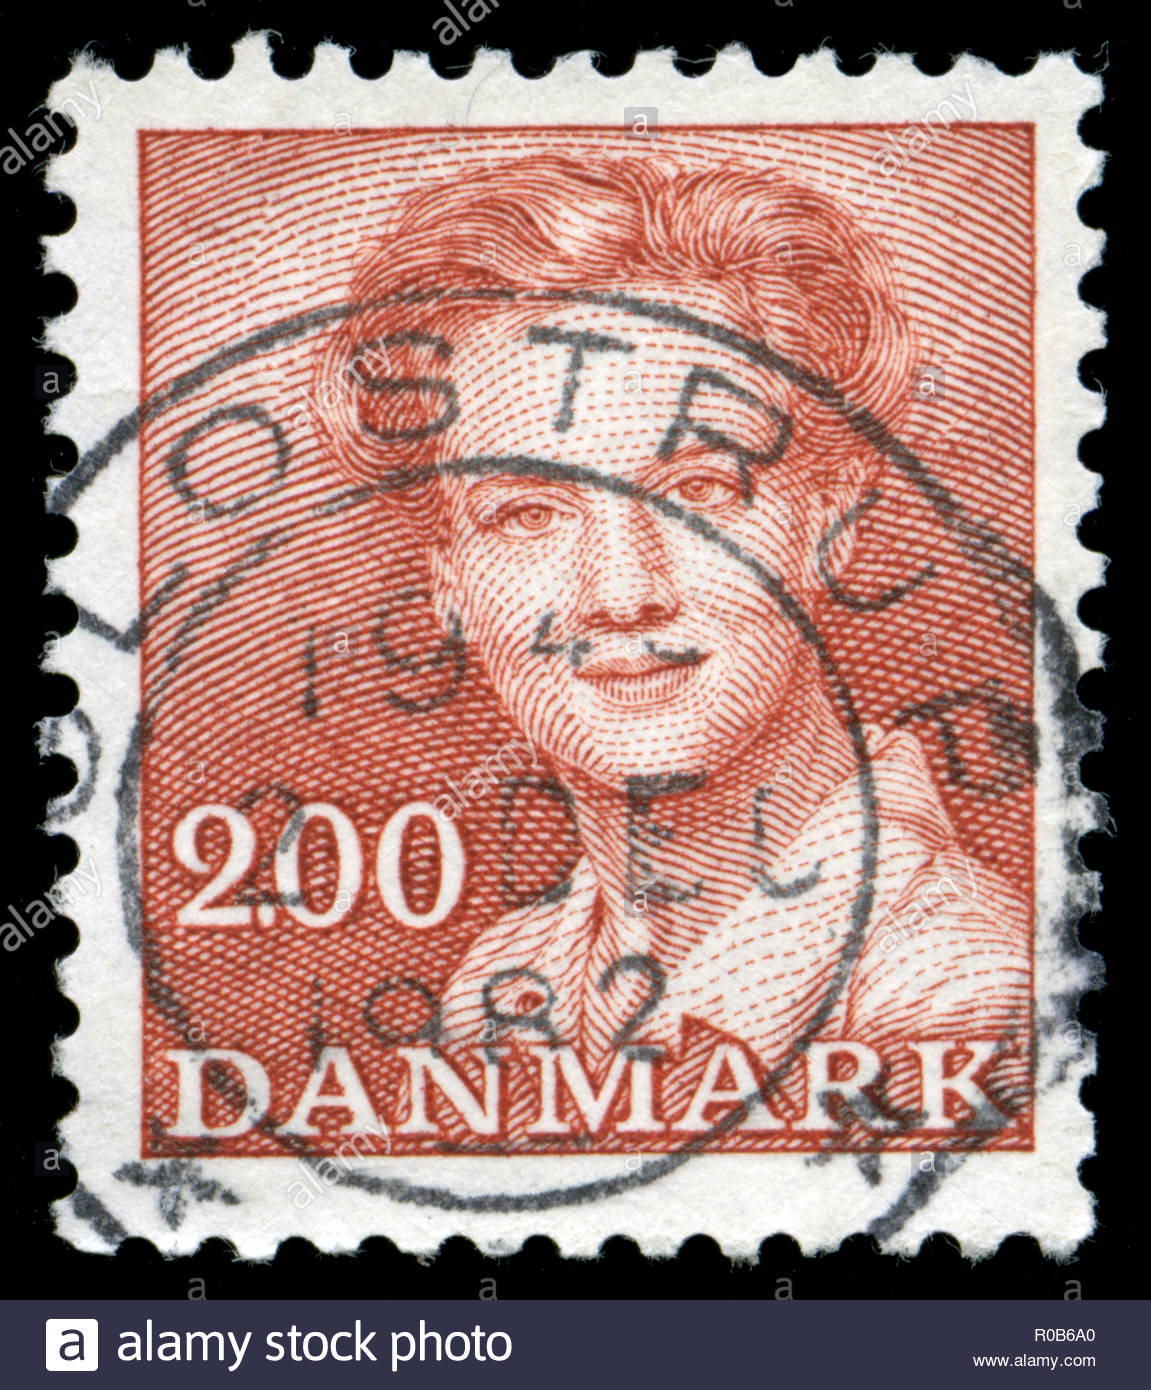 Postmarked stamp from Denmark in the Queen Margrethe II serie 2 - Stock Image